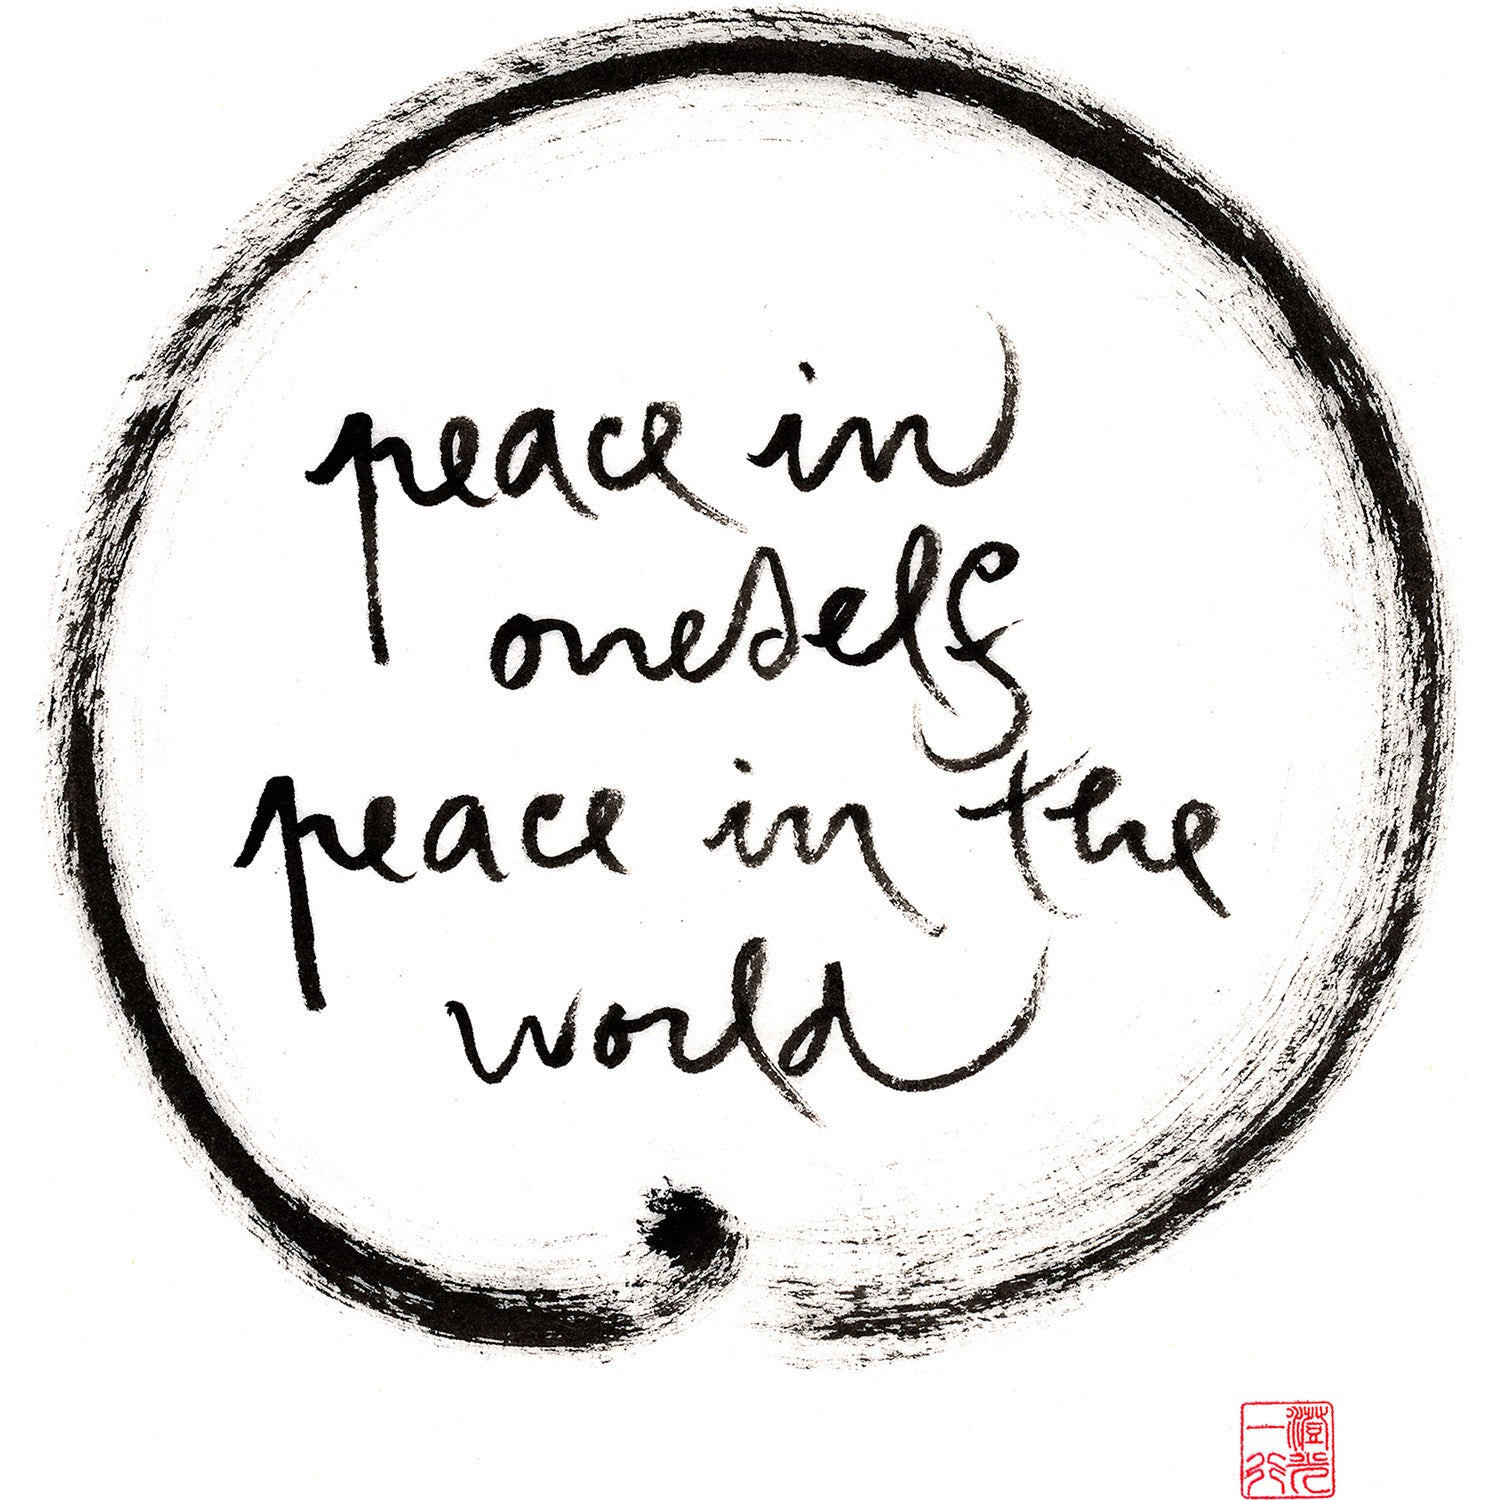 Thich Nhat Hanh Calligraphy - Peace in oneself, peace in the world ...